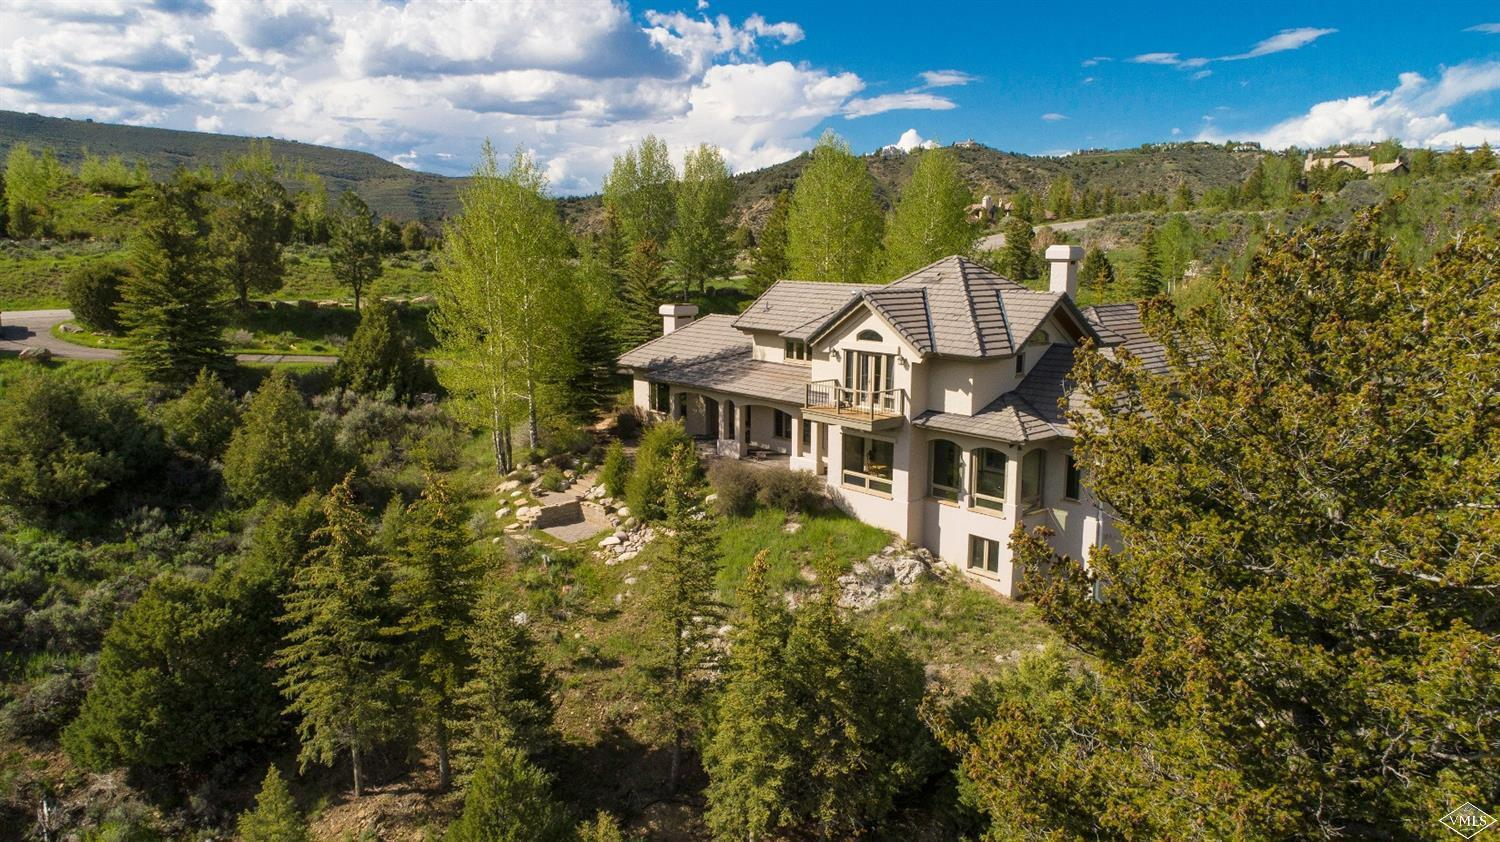 Stunning views from every room in this classic ridge line home, situated just inside the Divide and only 10 minutes from Riverwalk. A fabulous 4-bedroom home and one of Cordillera's most treasured residences.